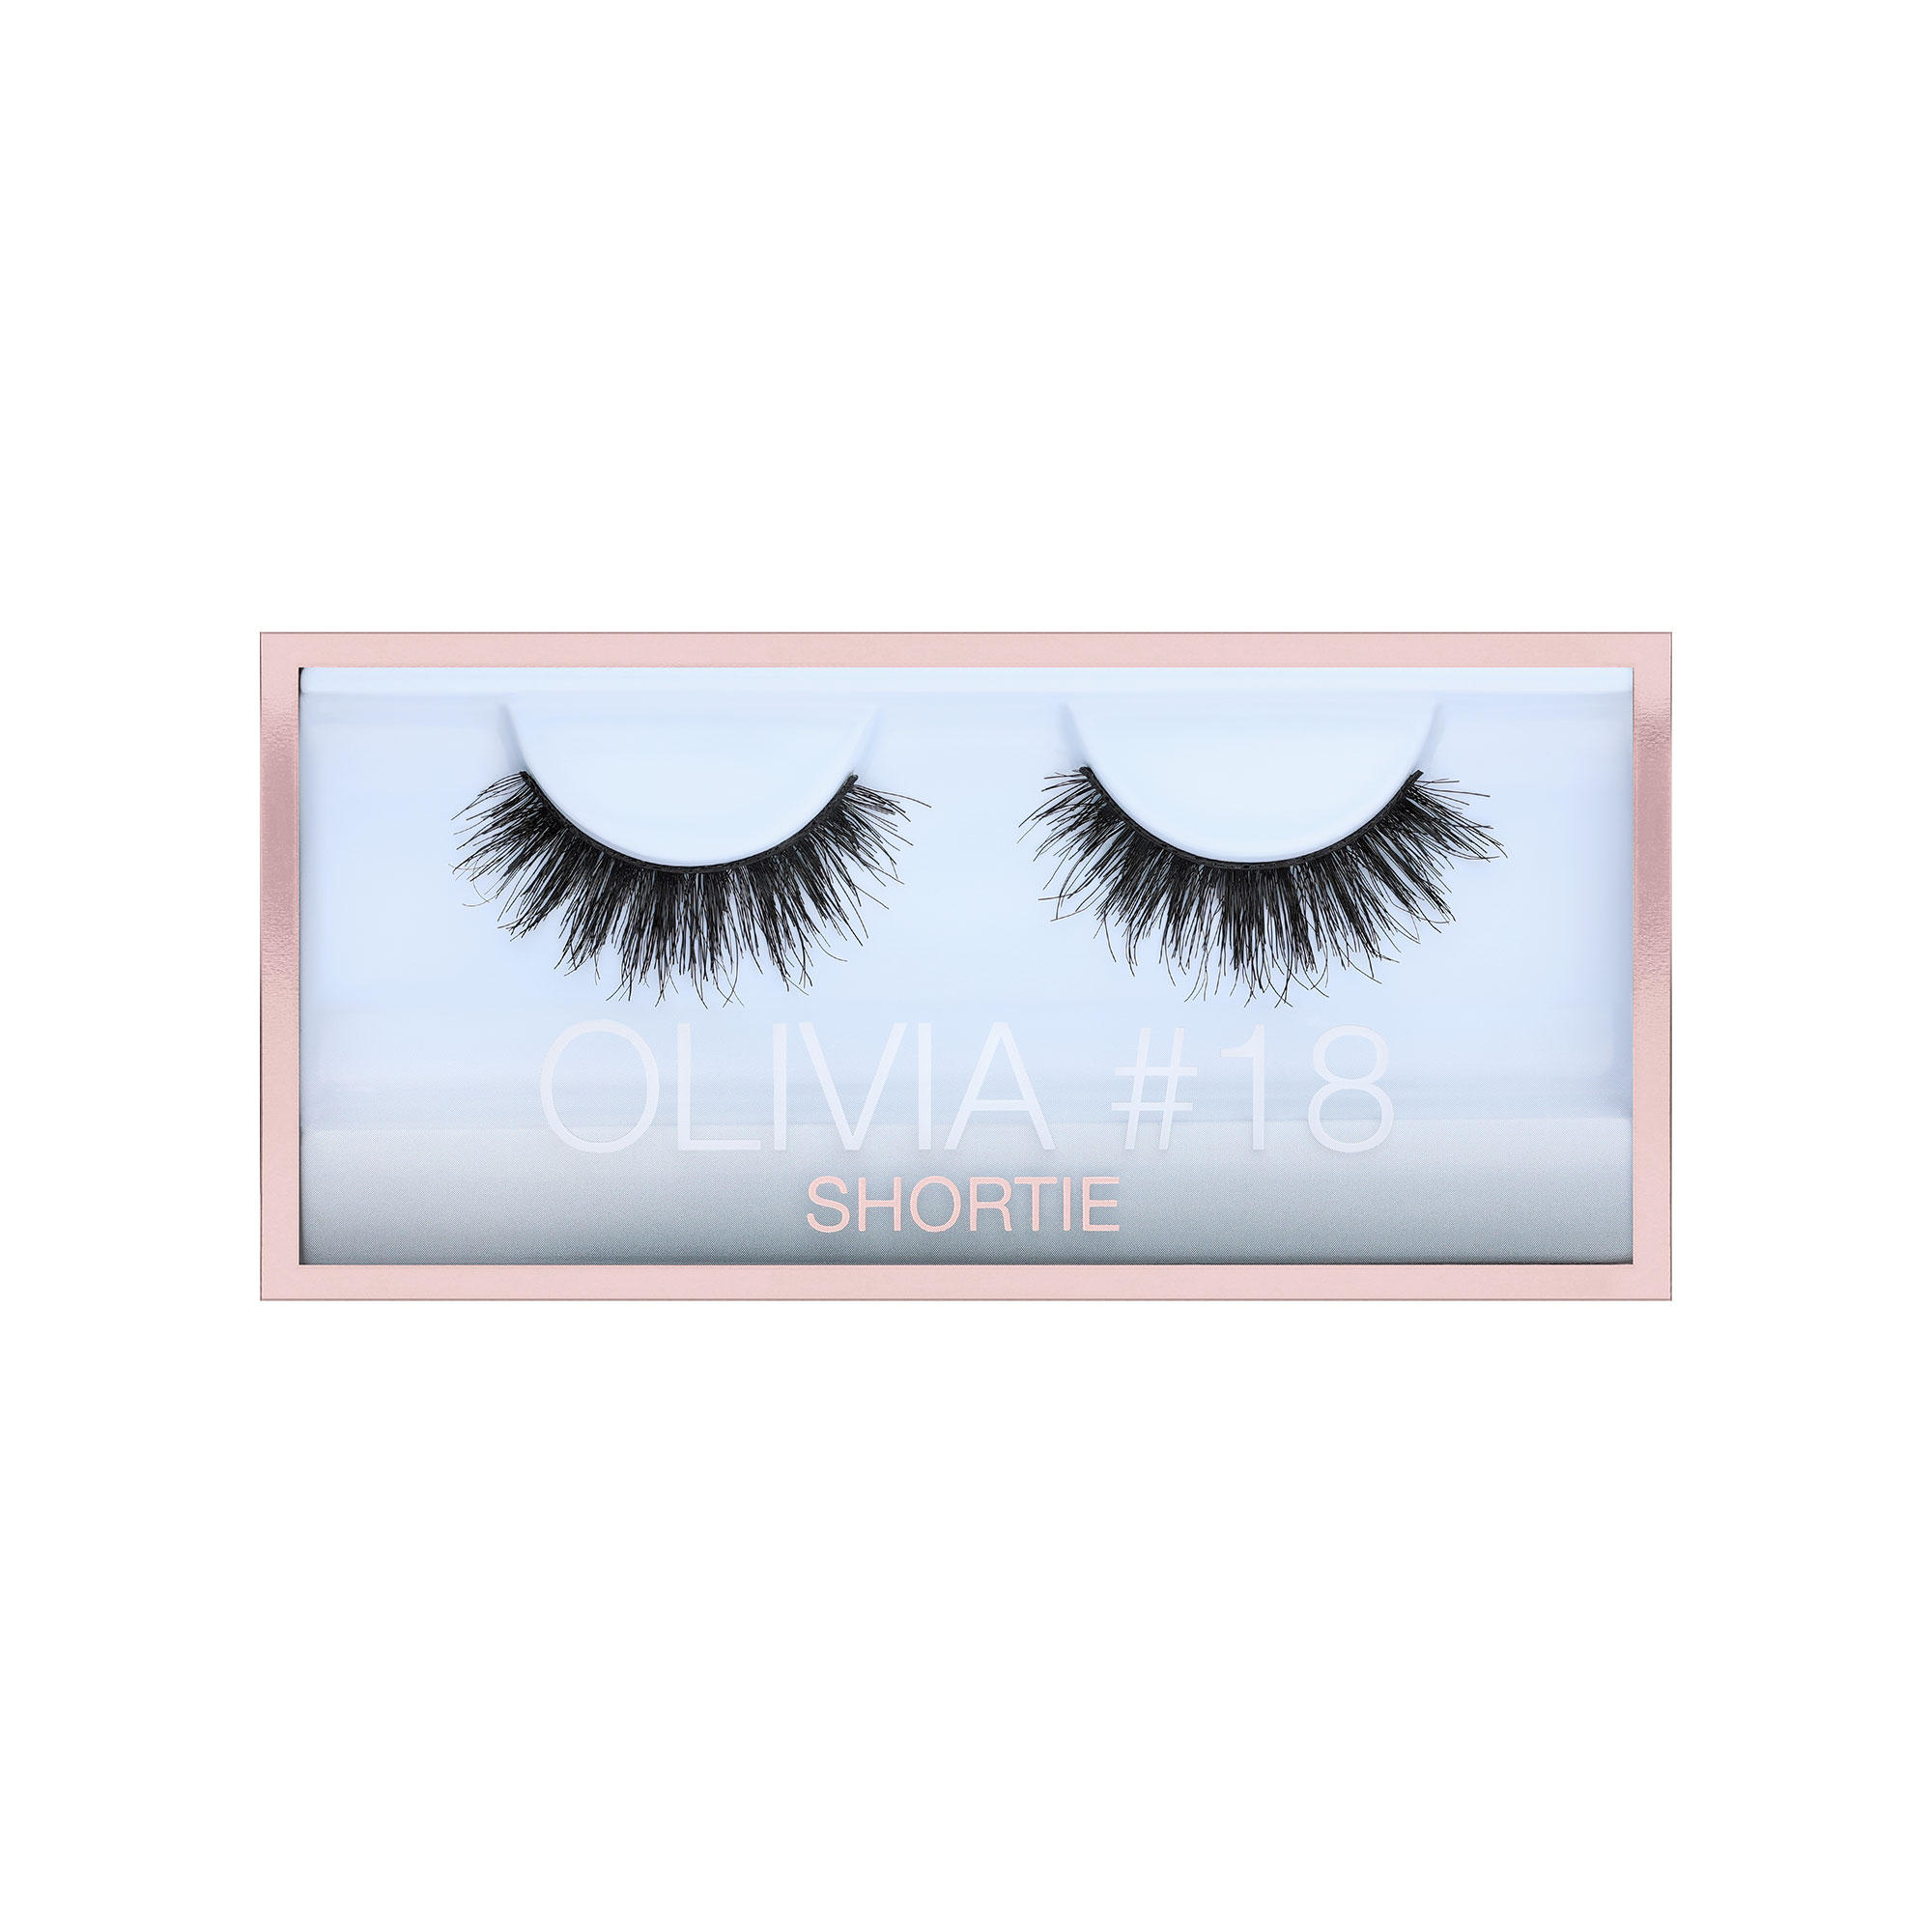 It Just Got Easier to Copy Olivia Culpo¹s Fluttery Lashes - Olivia Culpo and Huda Beauty lashes